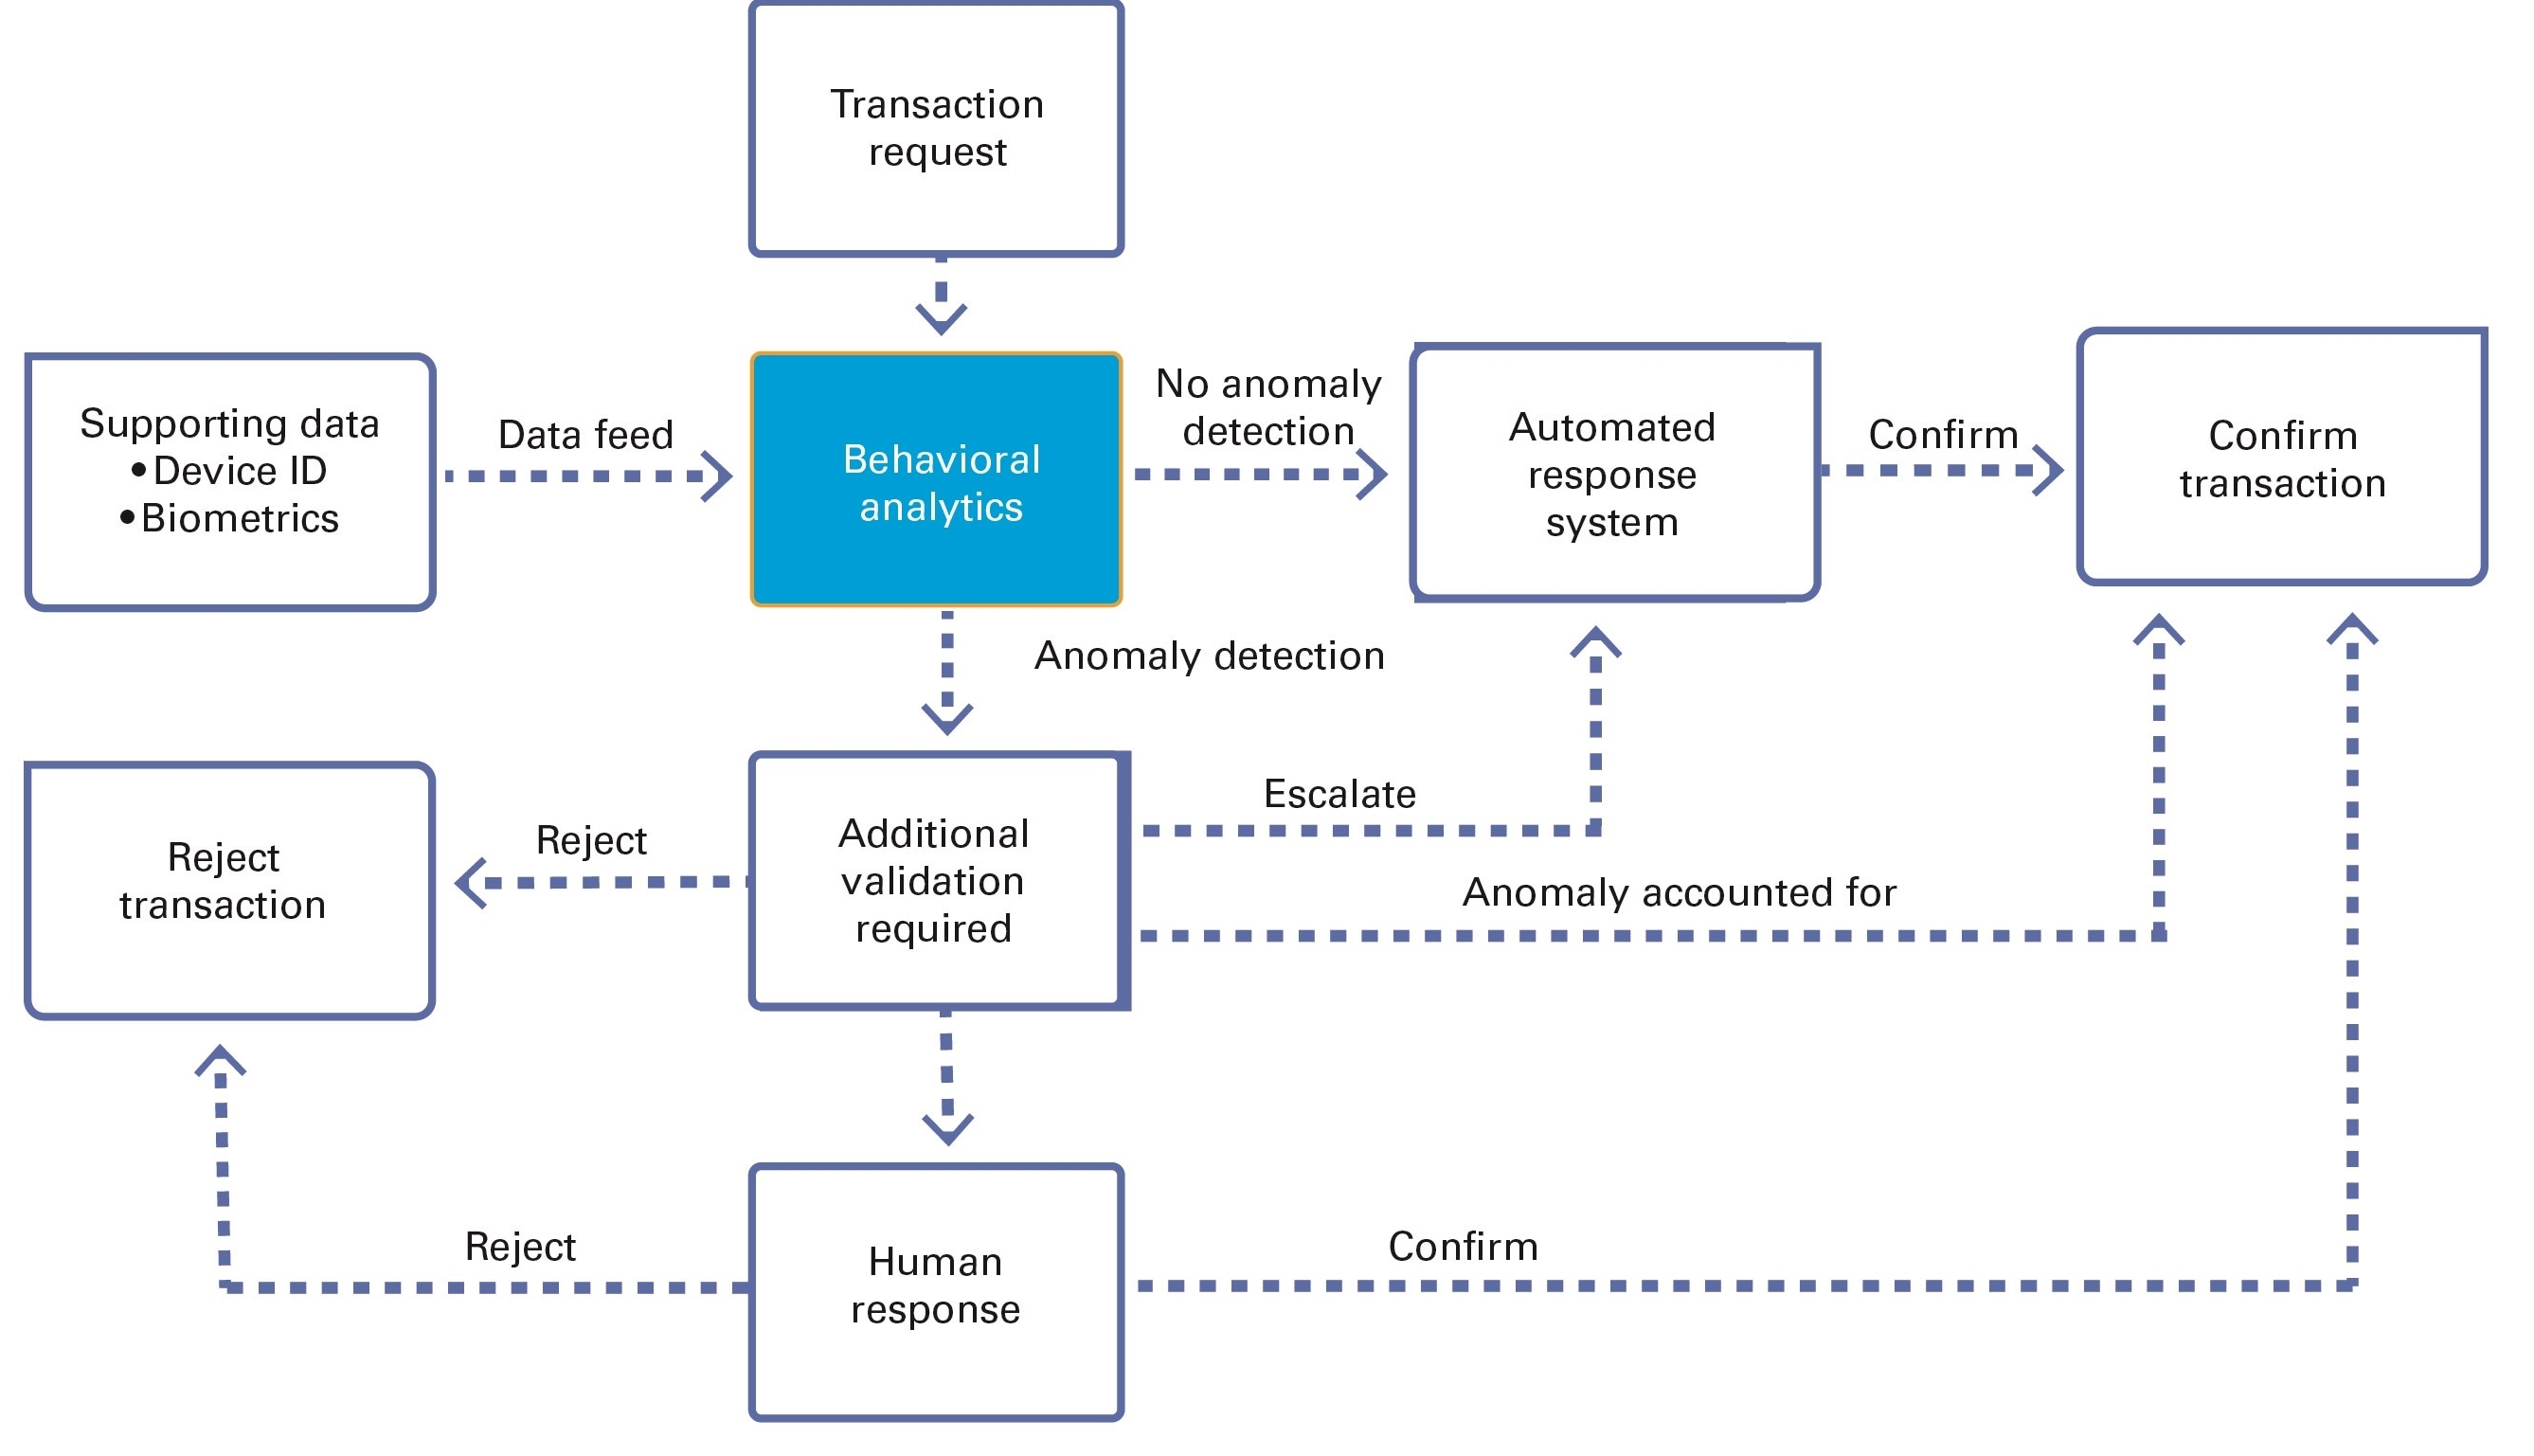 A complex process: an anti-fraud system and its anomaly-detection capabilities